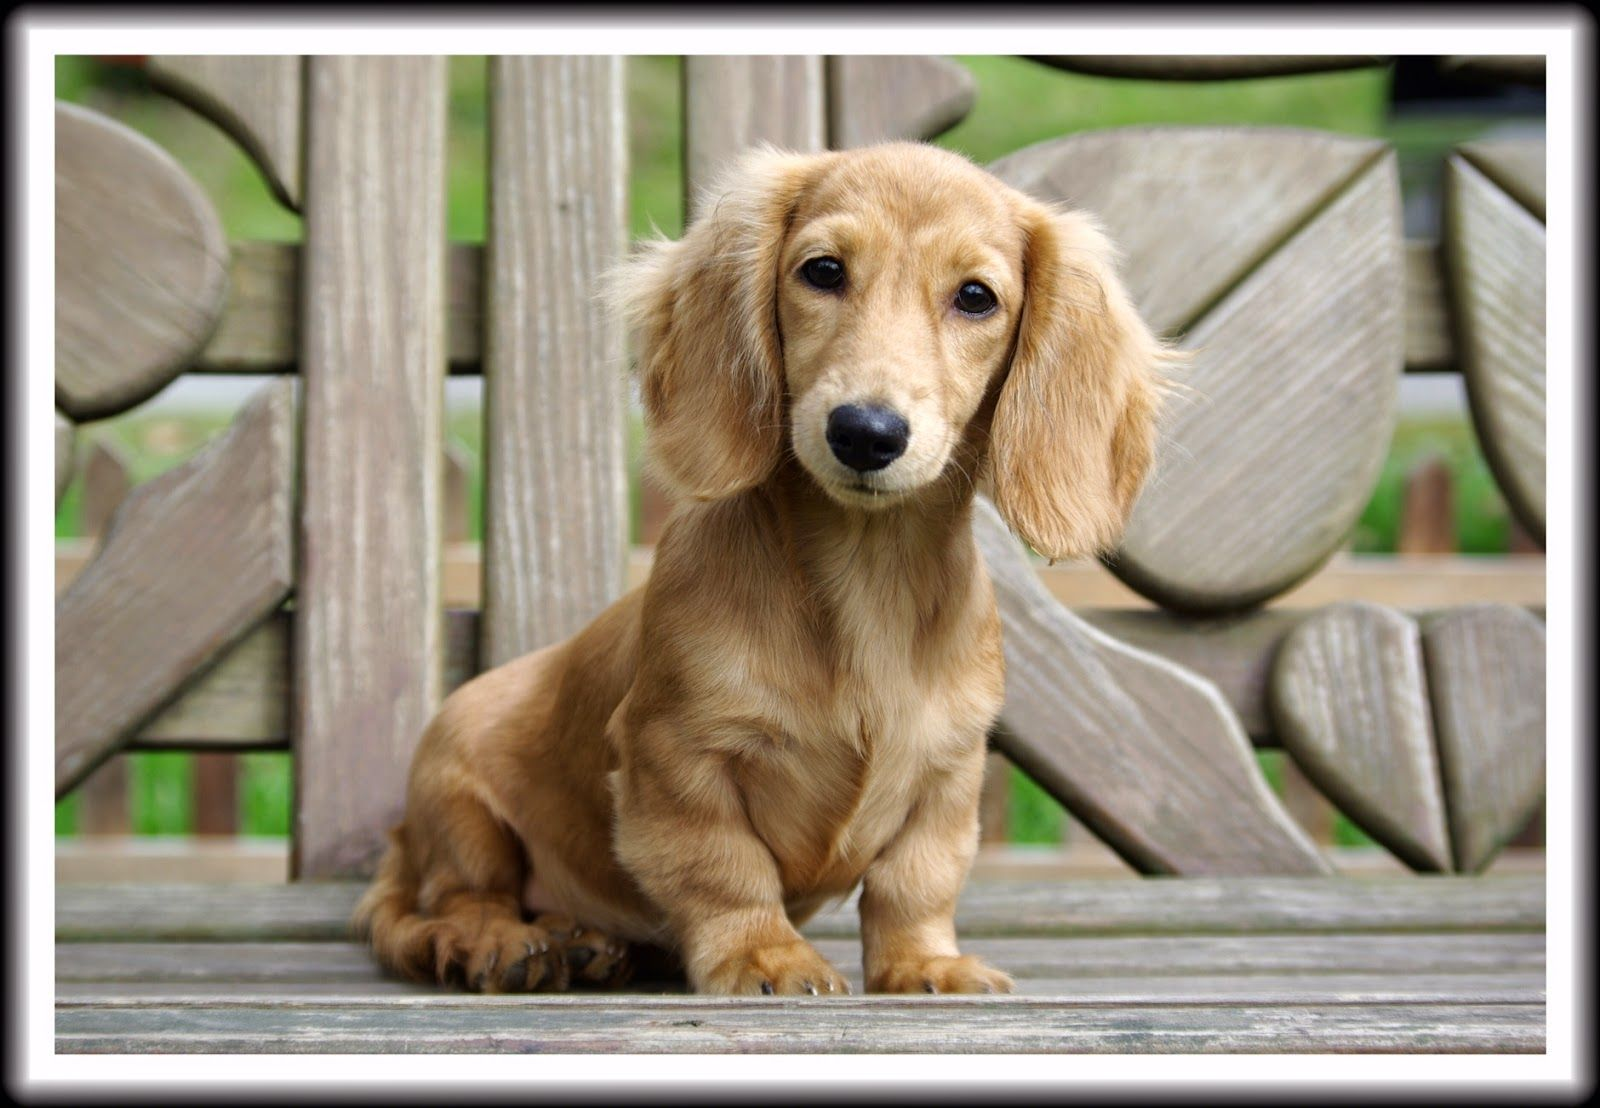 English Cream Miniature Dachshunds In Smooth Short Hair And Long Hair Dachshund Breed Long Haired Dachshund Dachshund Dog